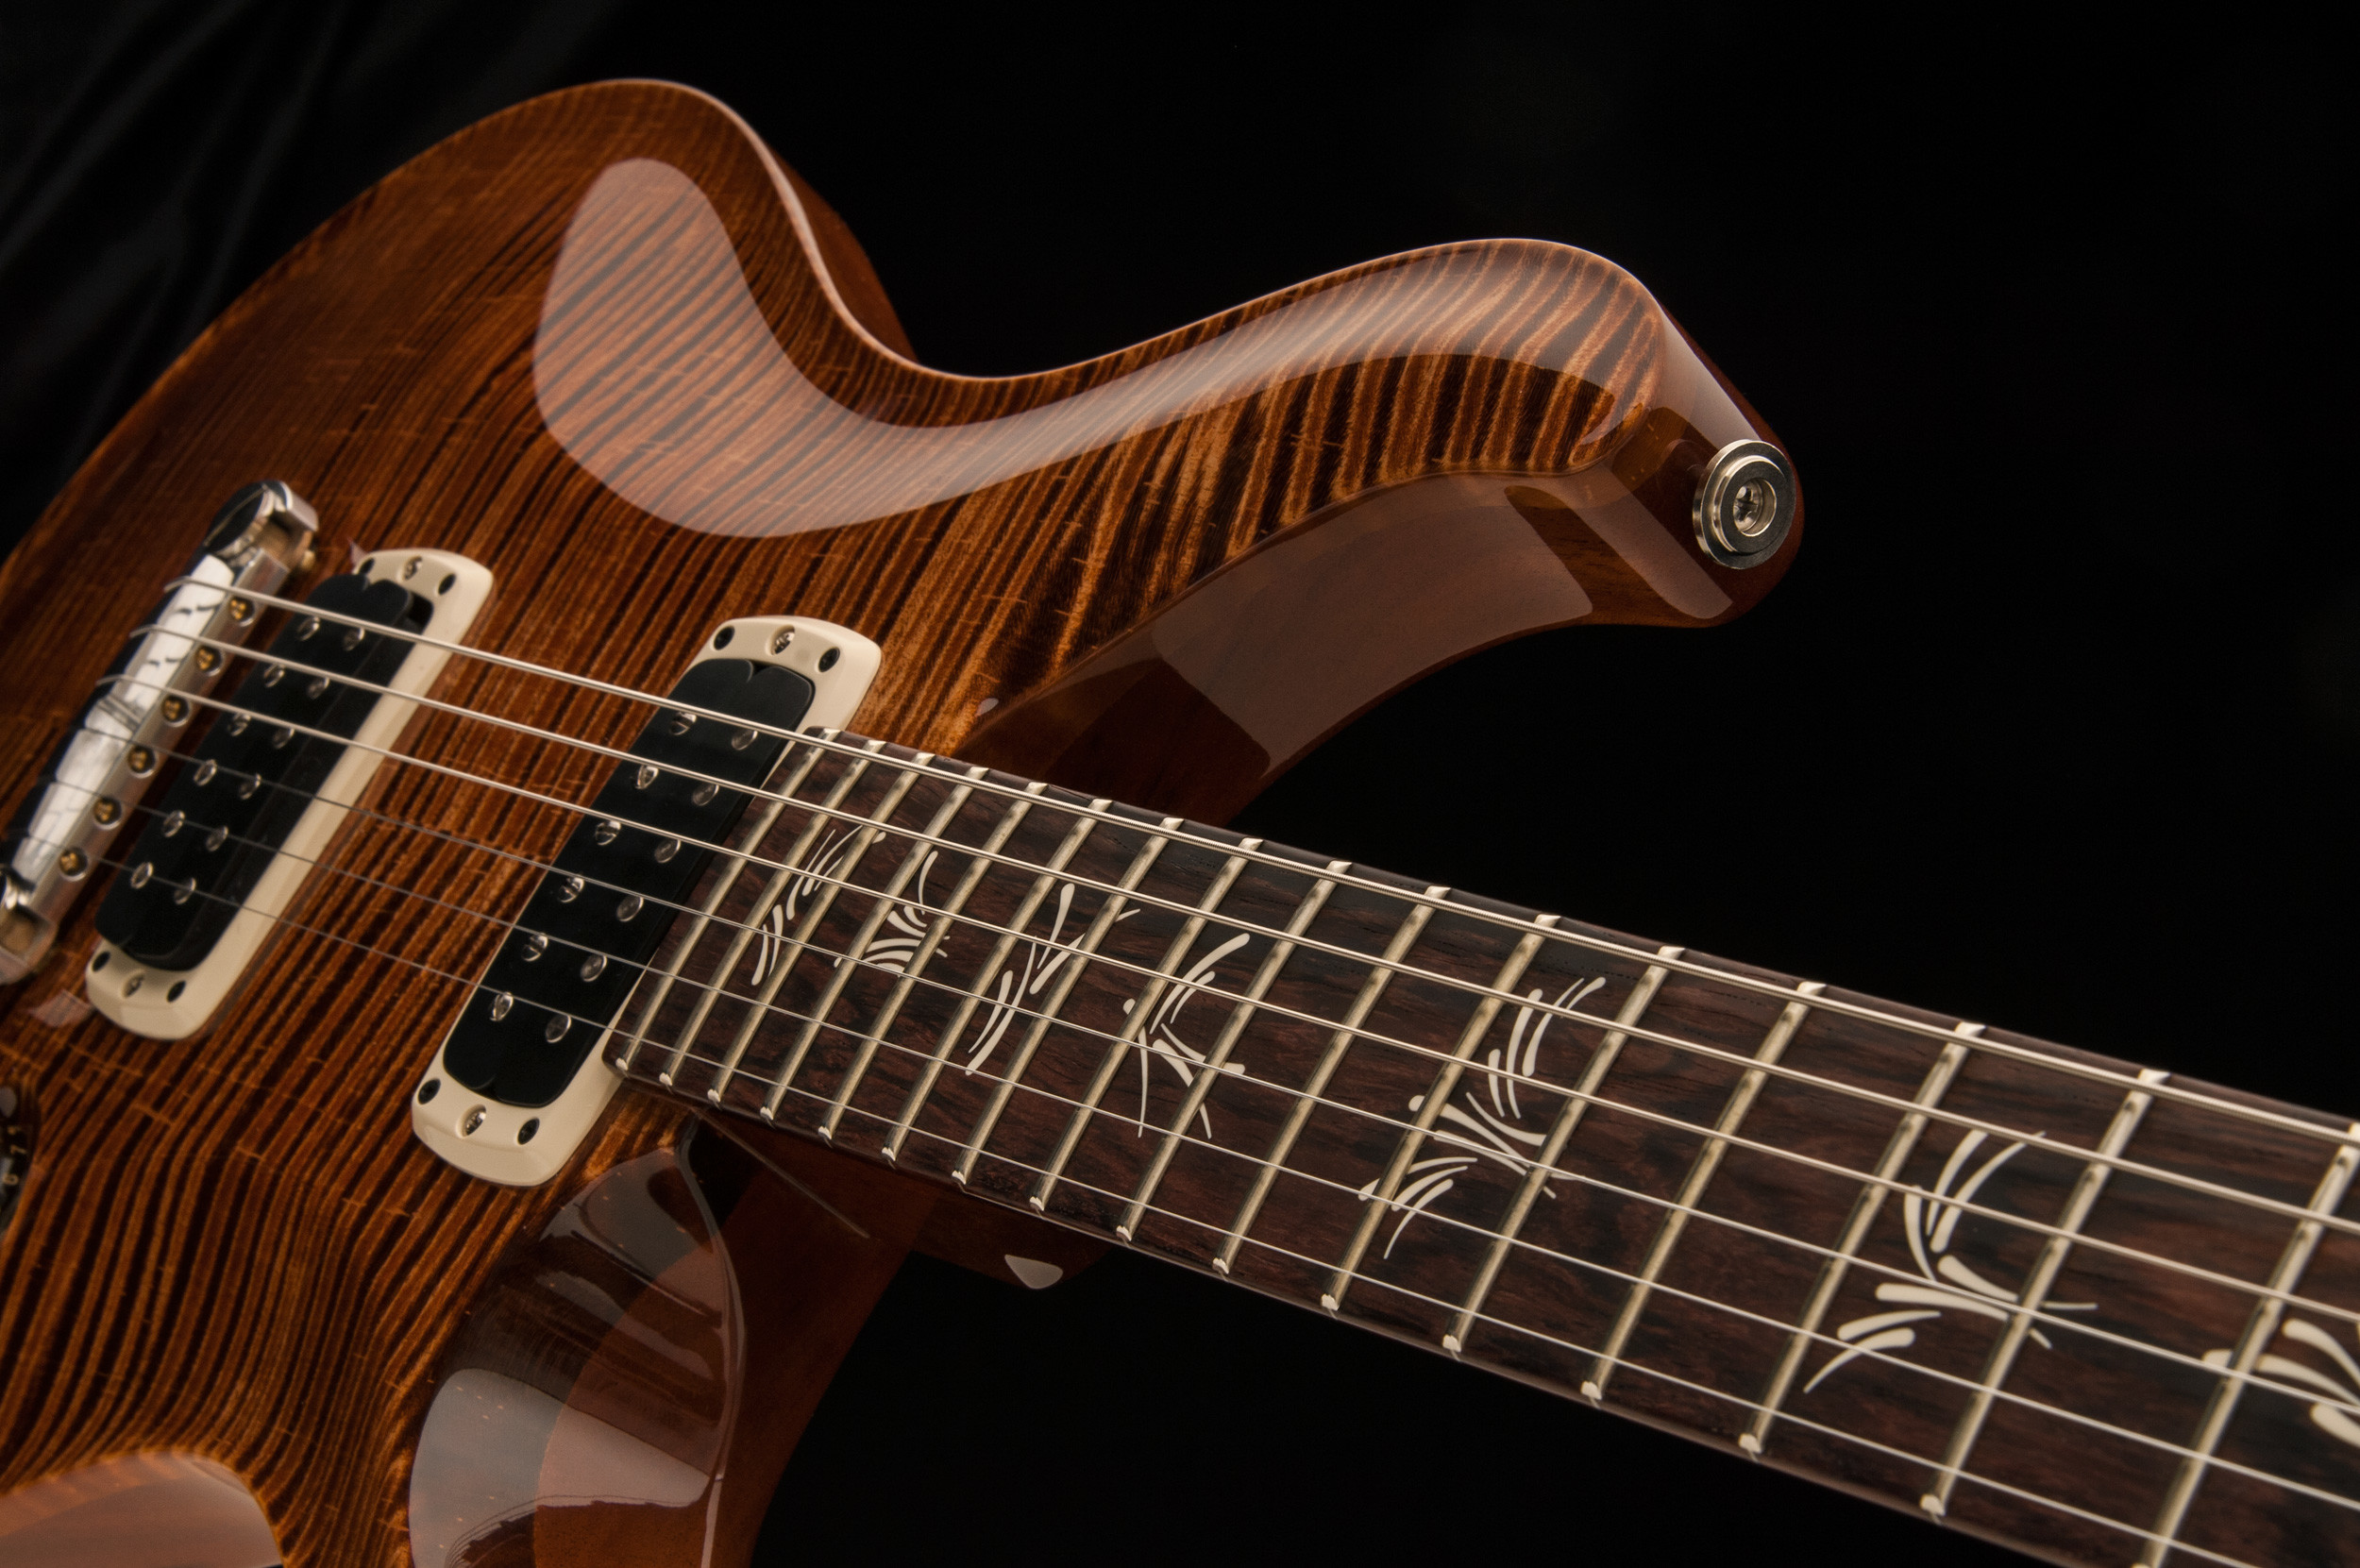 Prs Guitar Wallpaper 57 images